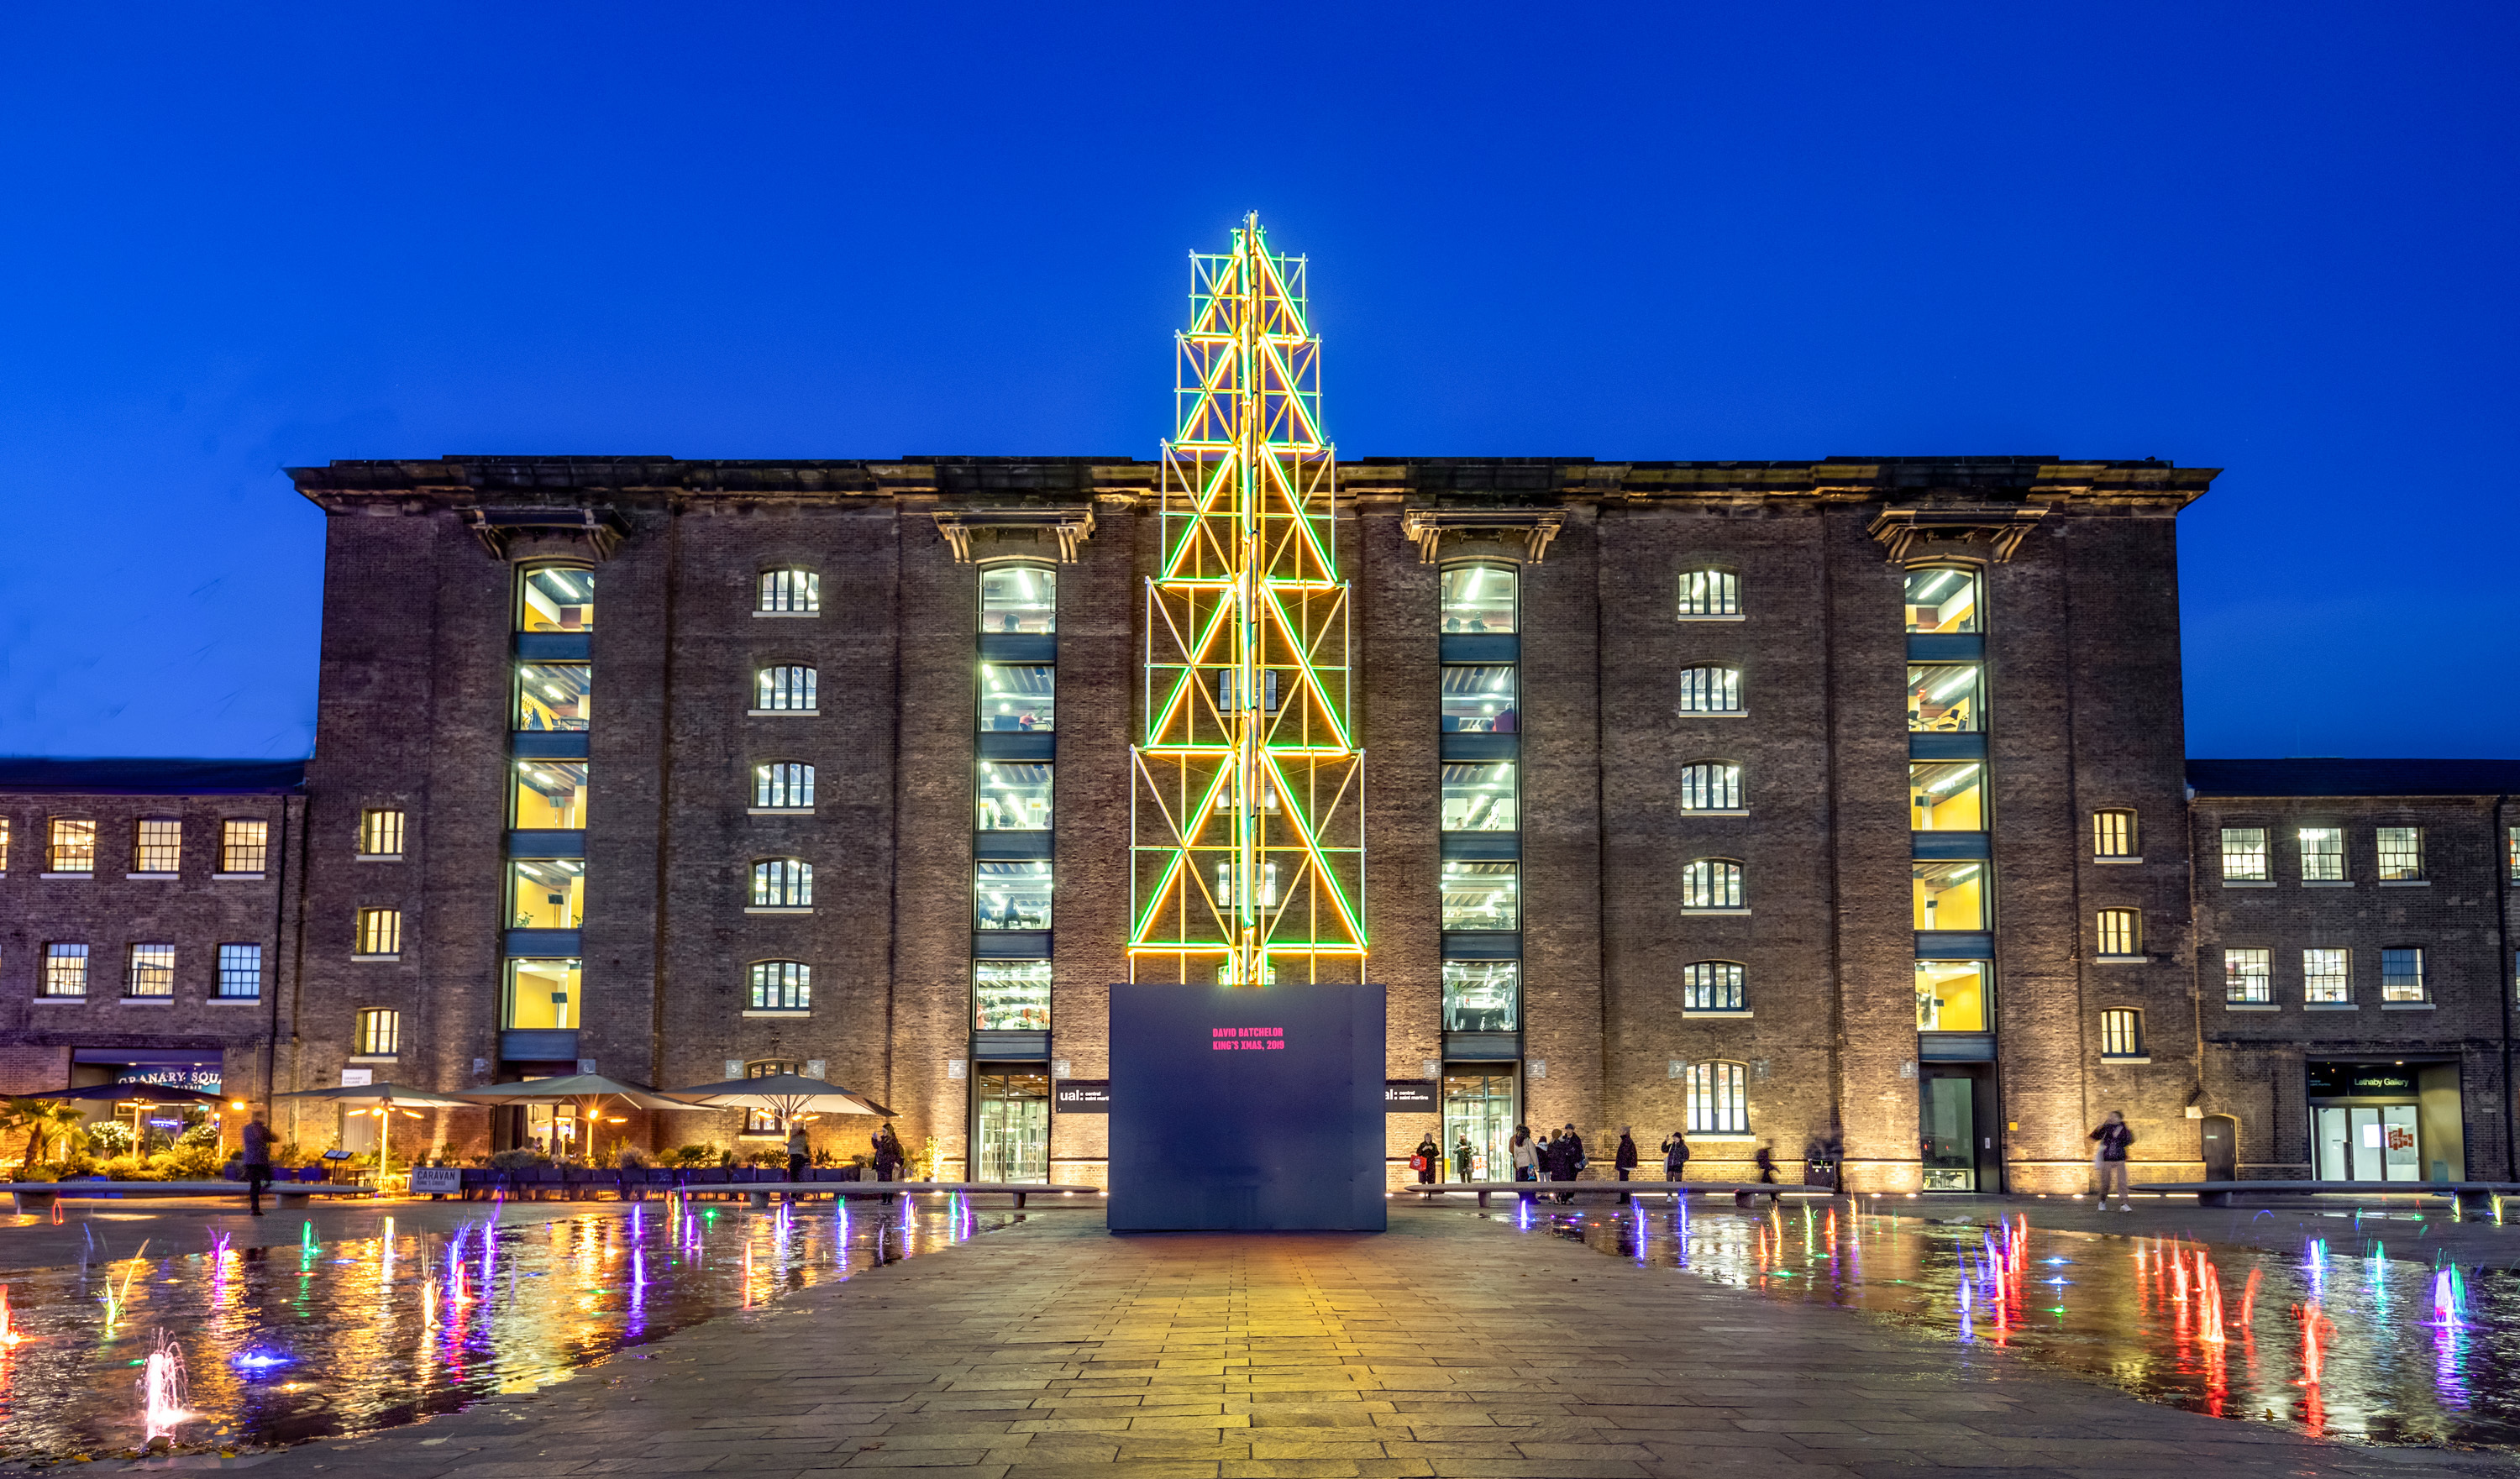 Christmas Tree by David Batchelor, Granary Square, King's Cross